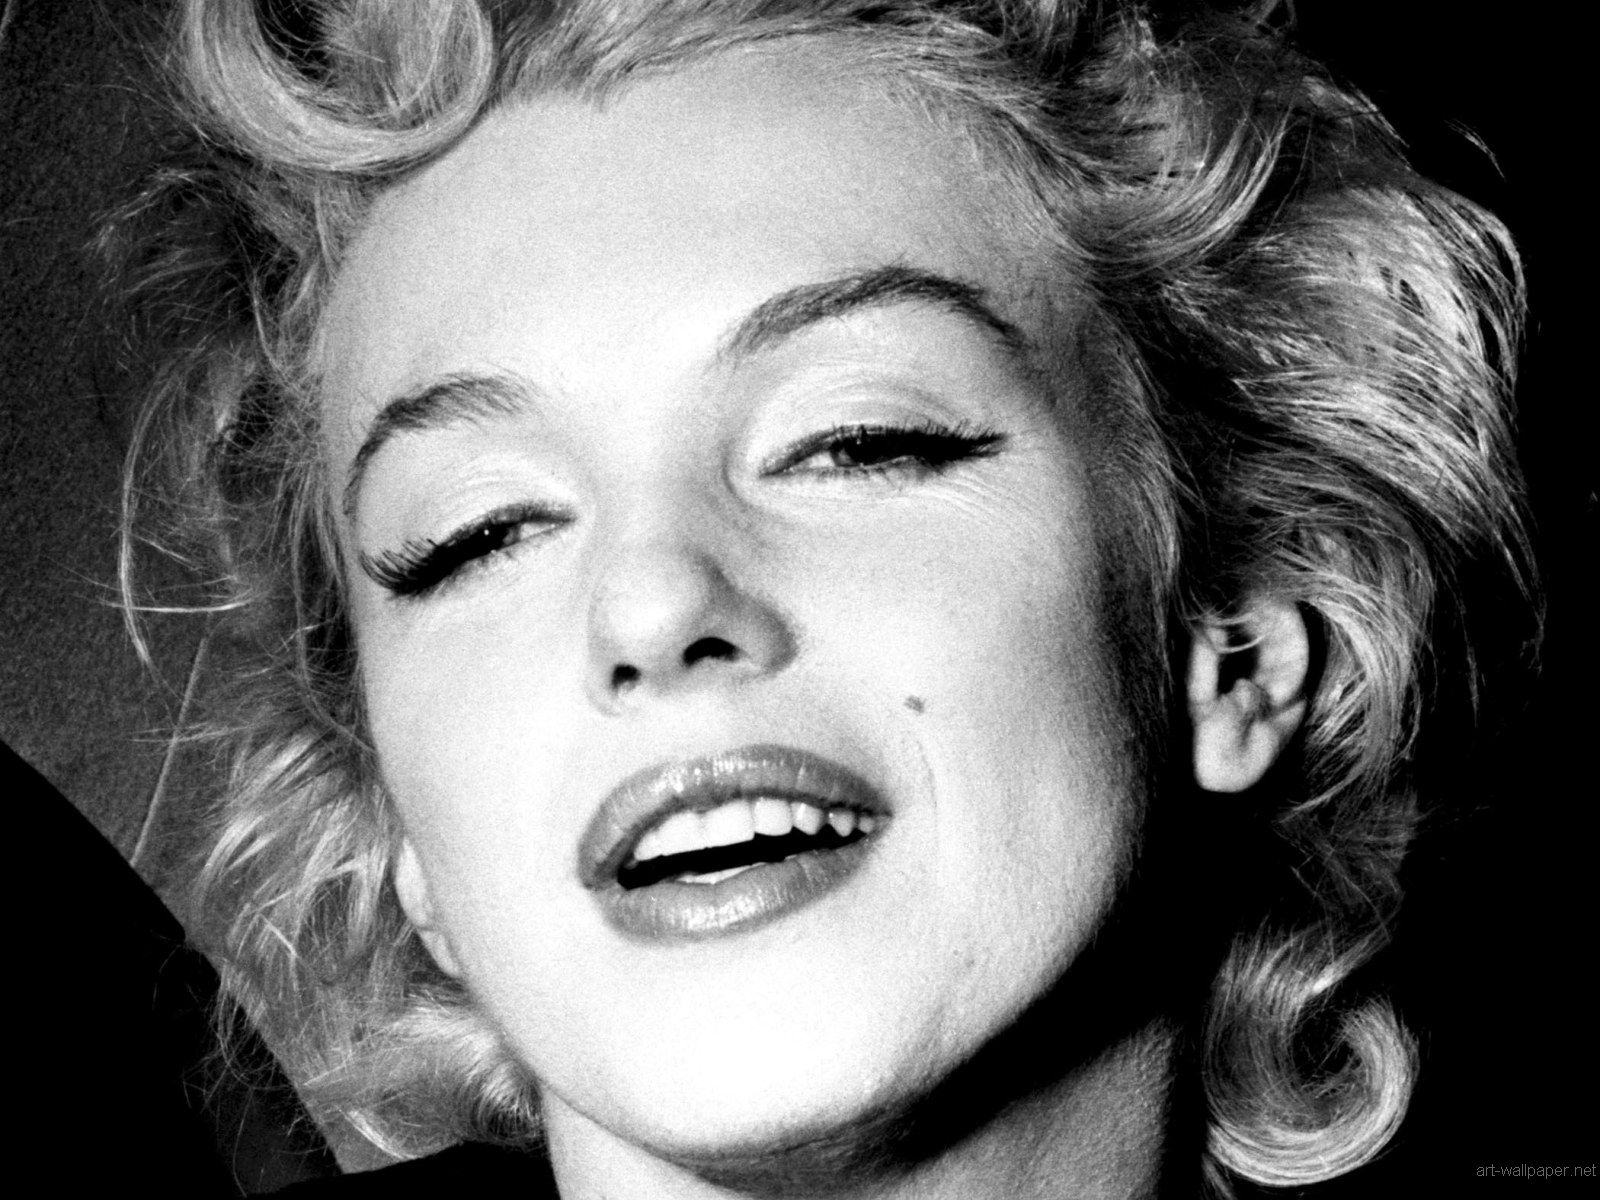 Download marilyn monroe 2154 hd wallpapers wallpaperich marilyn download marilyn monroe 2154 hd wallpapers wallpaperich voltagebd Gallery